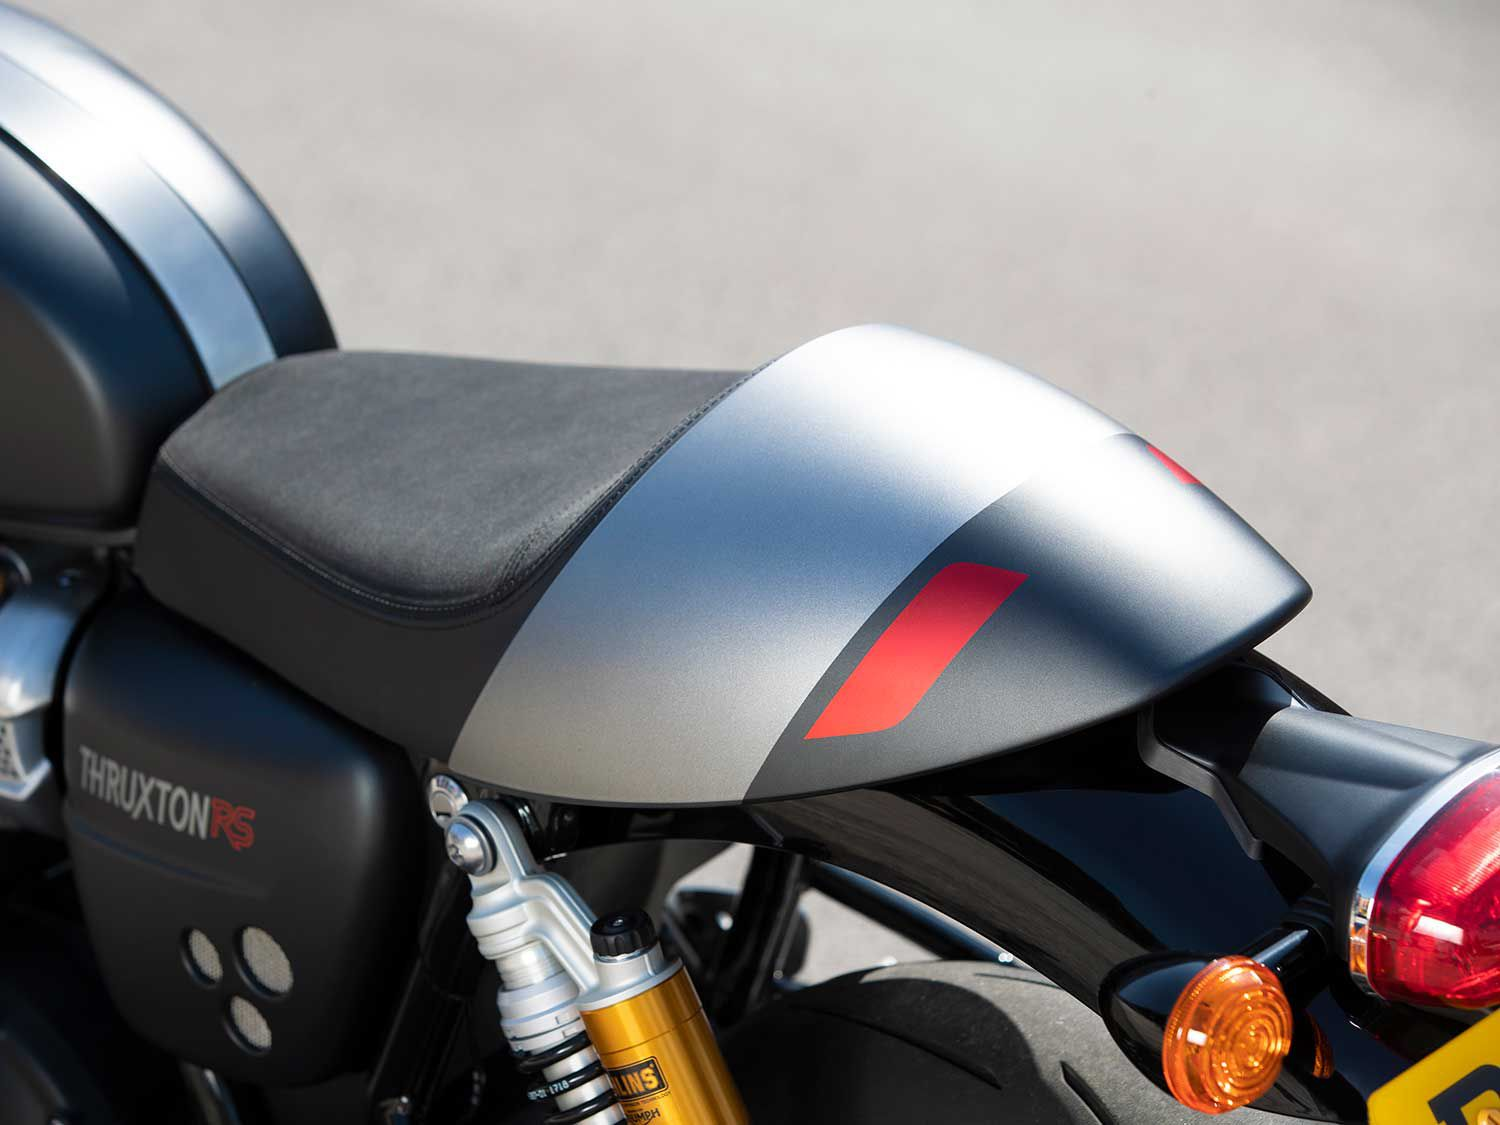 The RS can be fit with a pillion if you want to give a passenger a thrill.